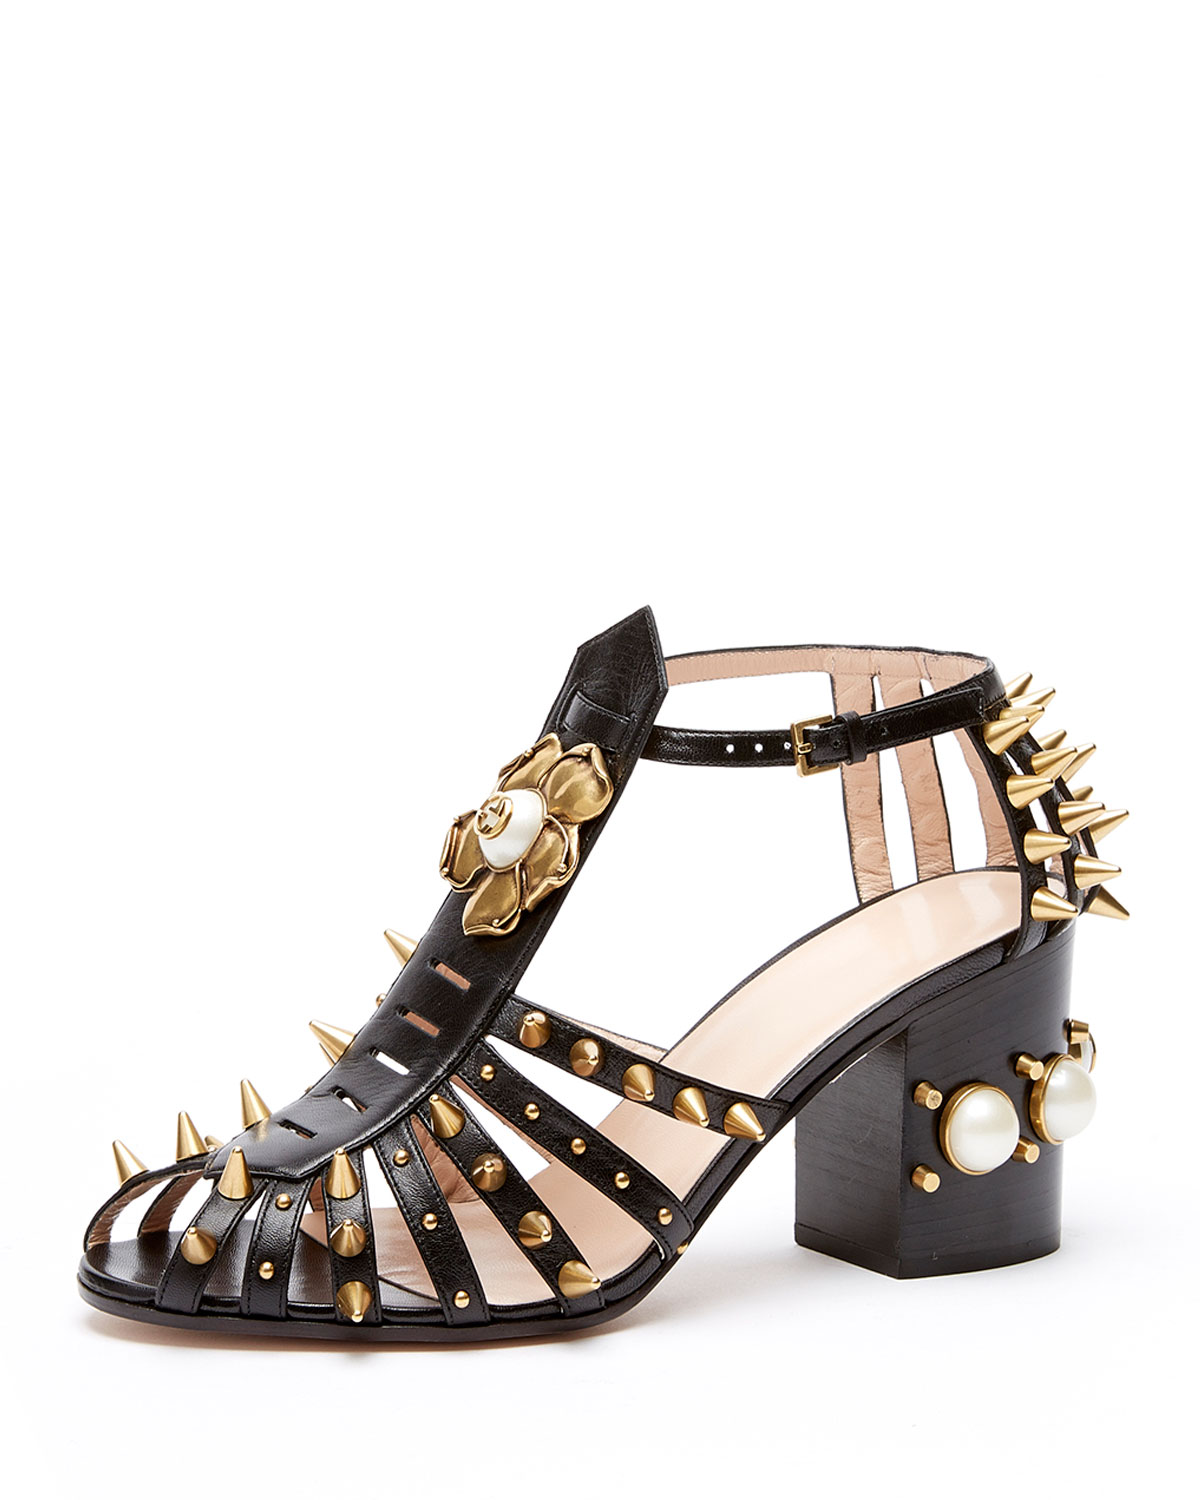 d0965c2ac75 Gucci Kendall Leather Studded Sandal